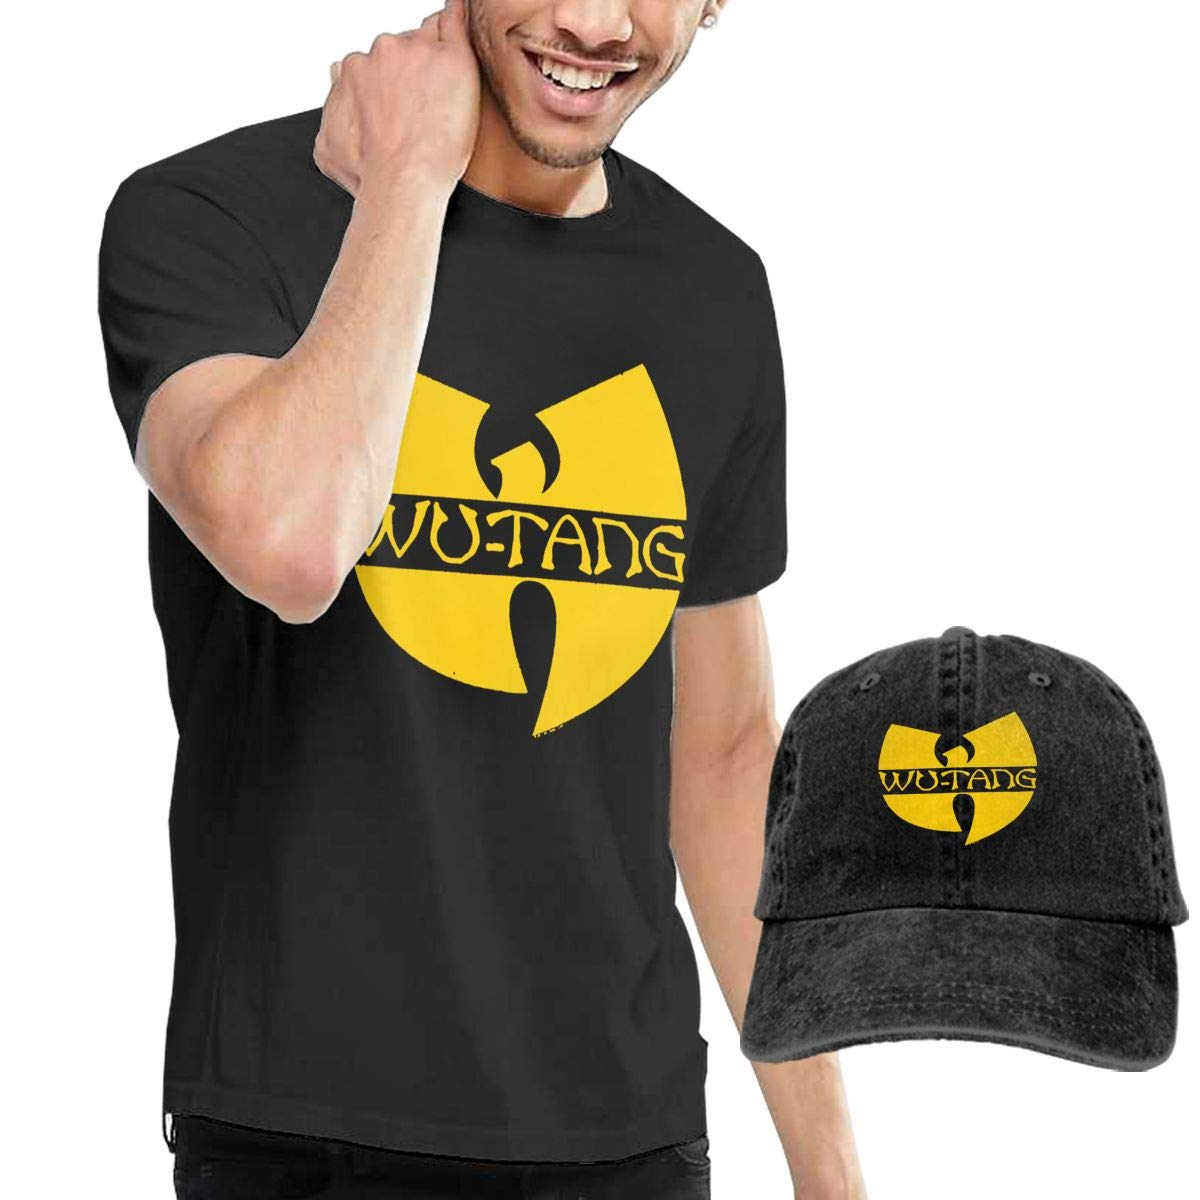 9f3006c7d Amazon.com: Wu-Tang Clan DIstressed Logo Black T-shirt Tee: Clothing